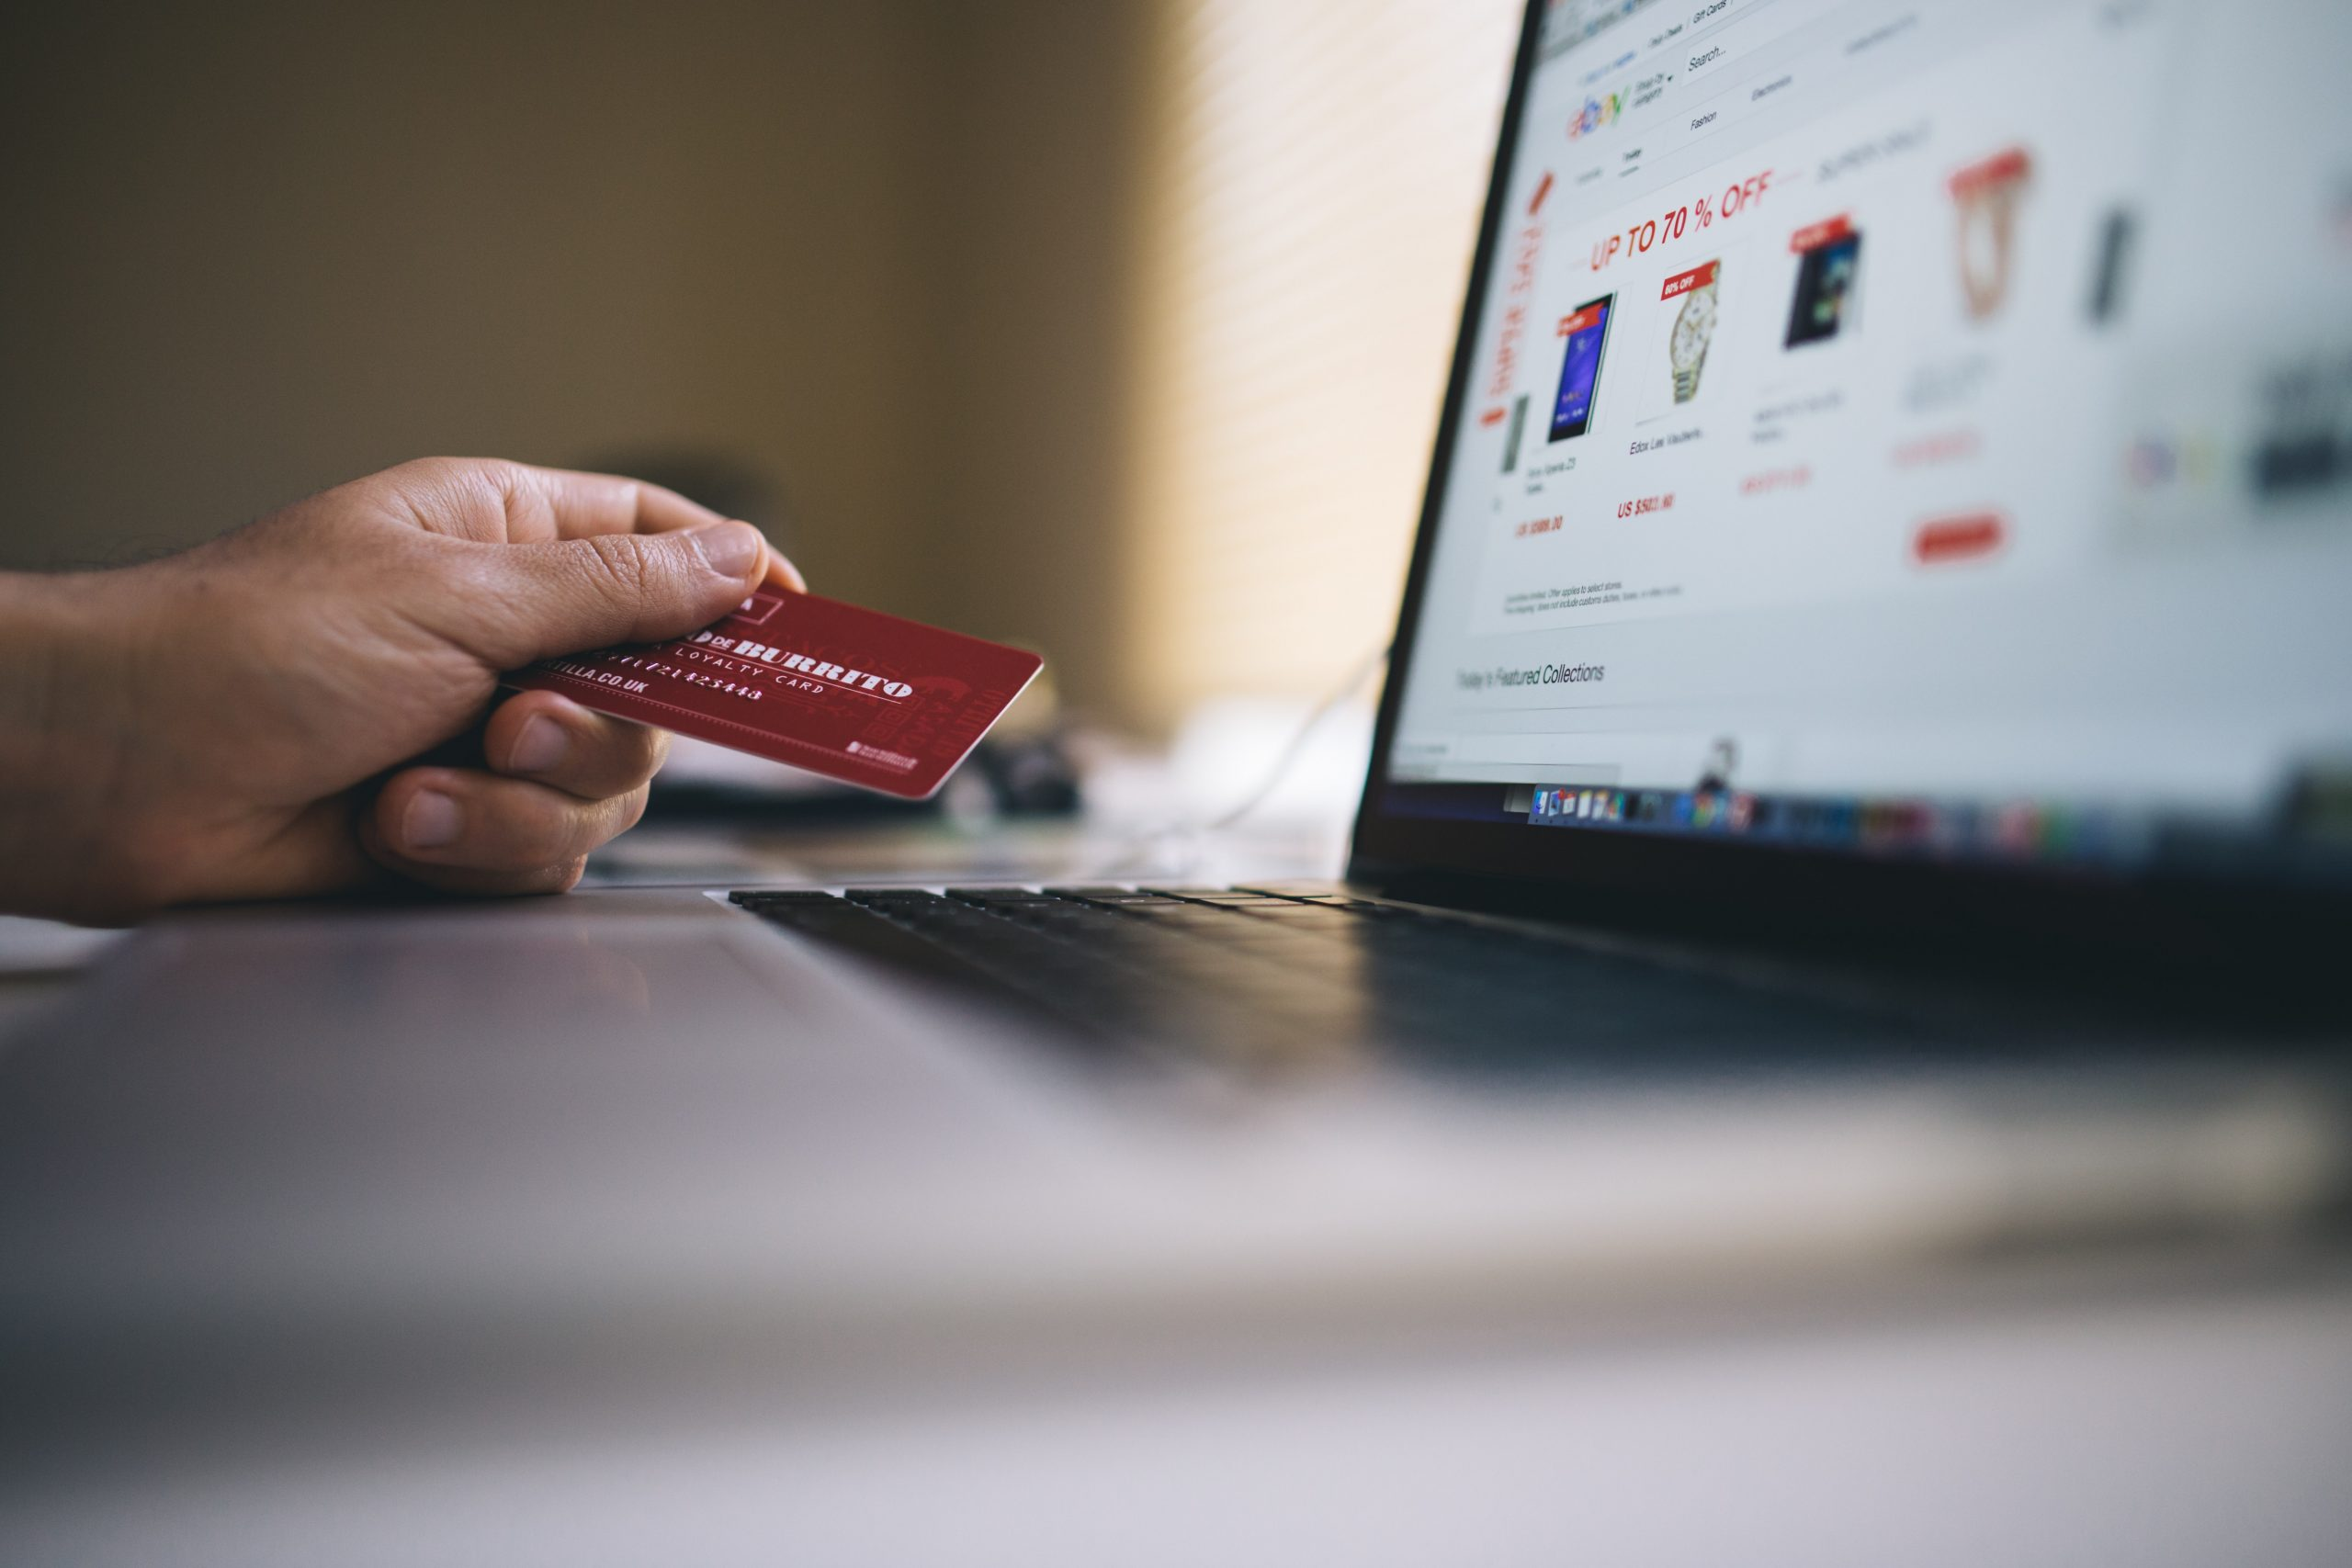 shopping experience in ecommerce stores